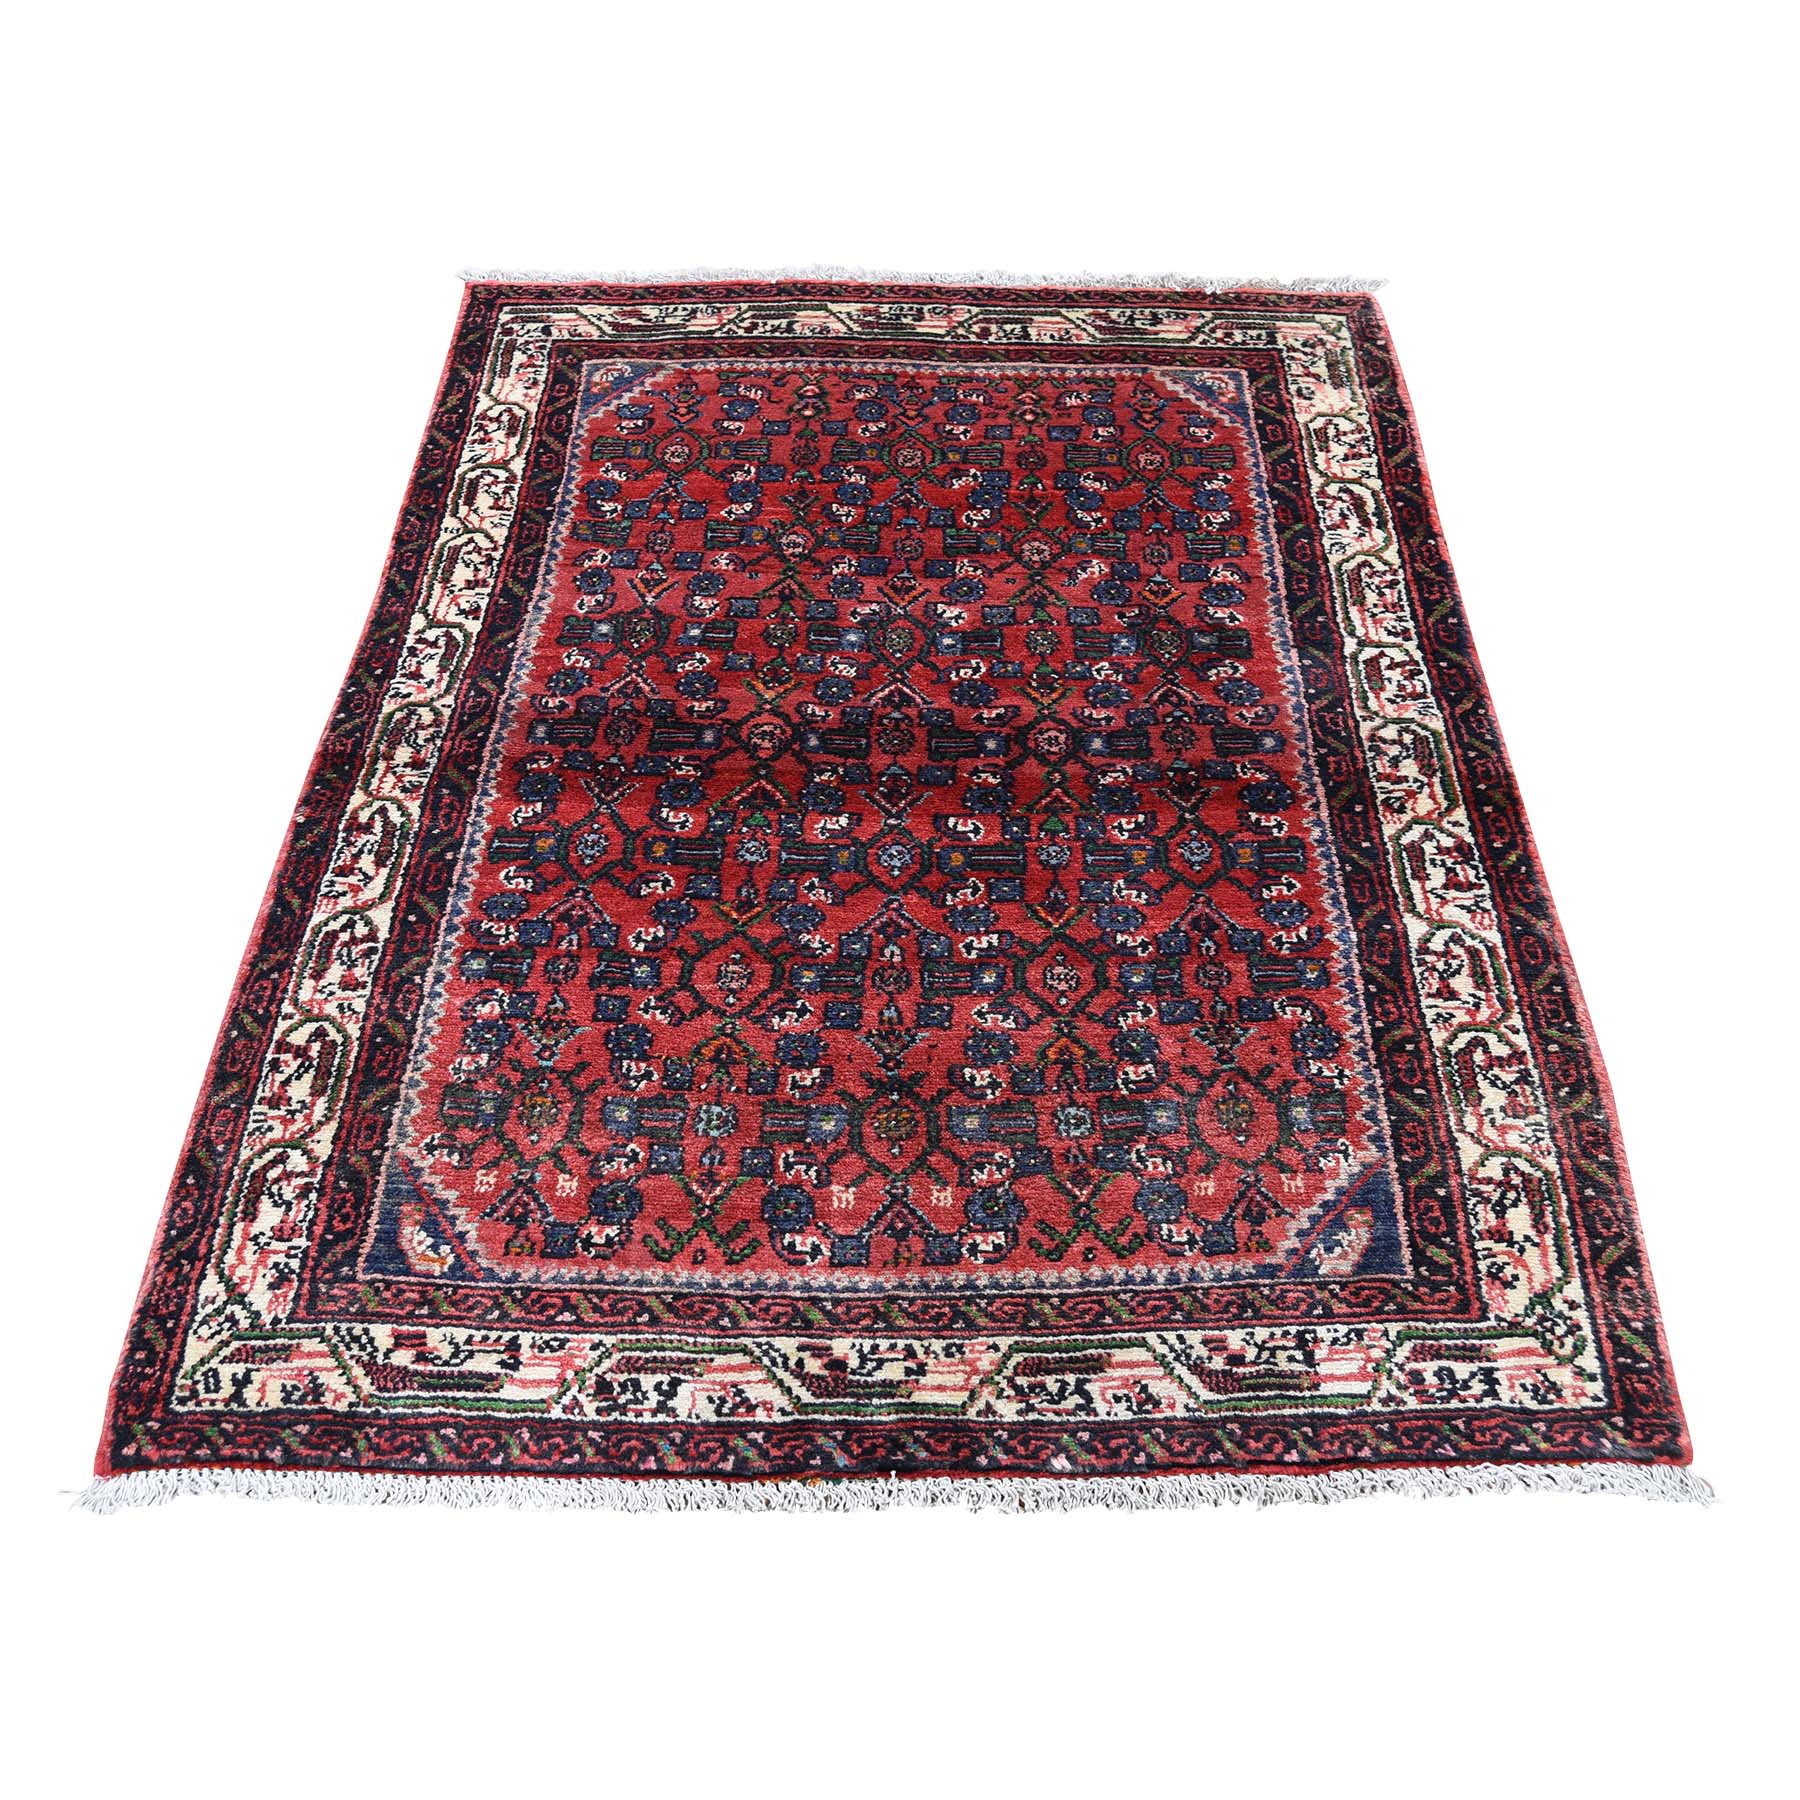 """3'4""""X4'6"""" Vintage Persian Hamadan Pure Wool Hand-Knotted Oriental Rug moadd67c"""